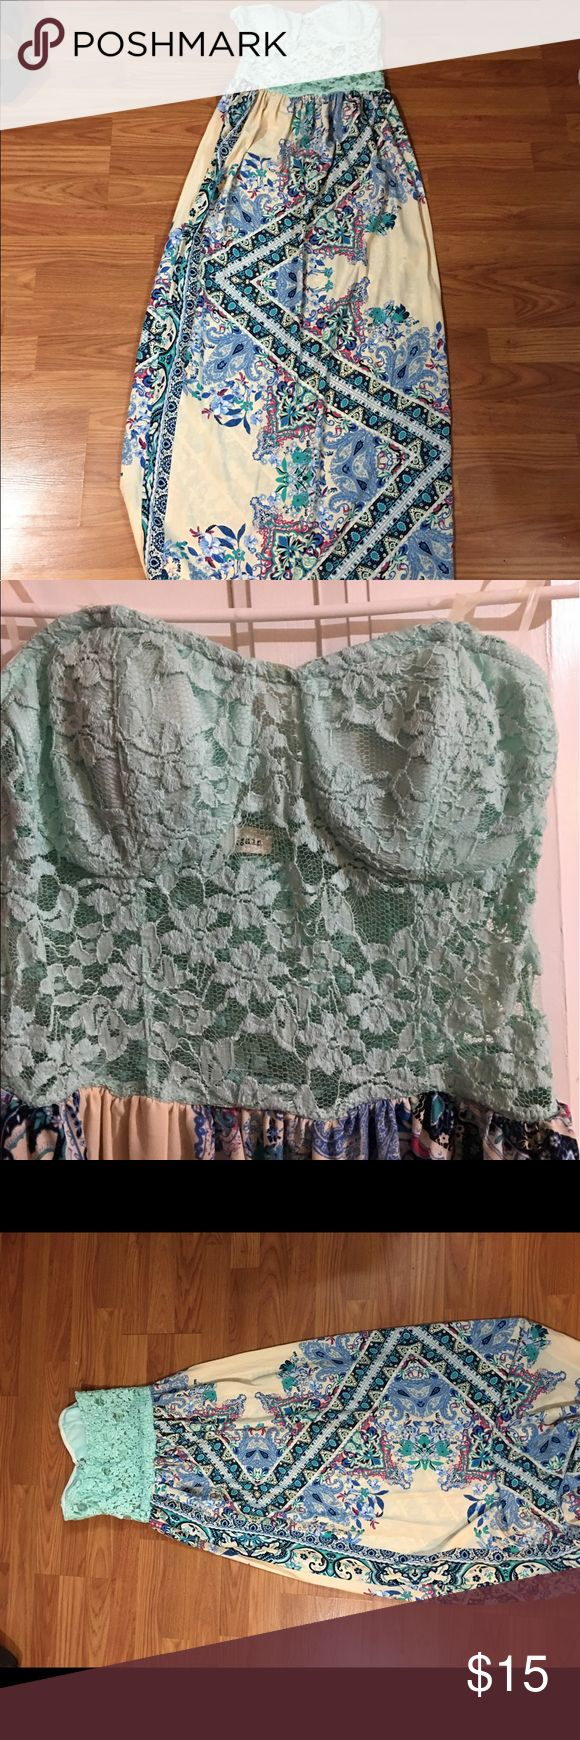 Turquoise maxi dress Cute turquoise maxi dress with paisley bottom and lace top. Never worn, I purchased the dress while on vacation and didn't try it on. I'm a 36C and the top was too small for my chest for reference. a.gain Dresses Maxi